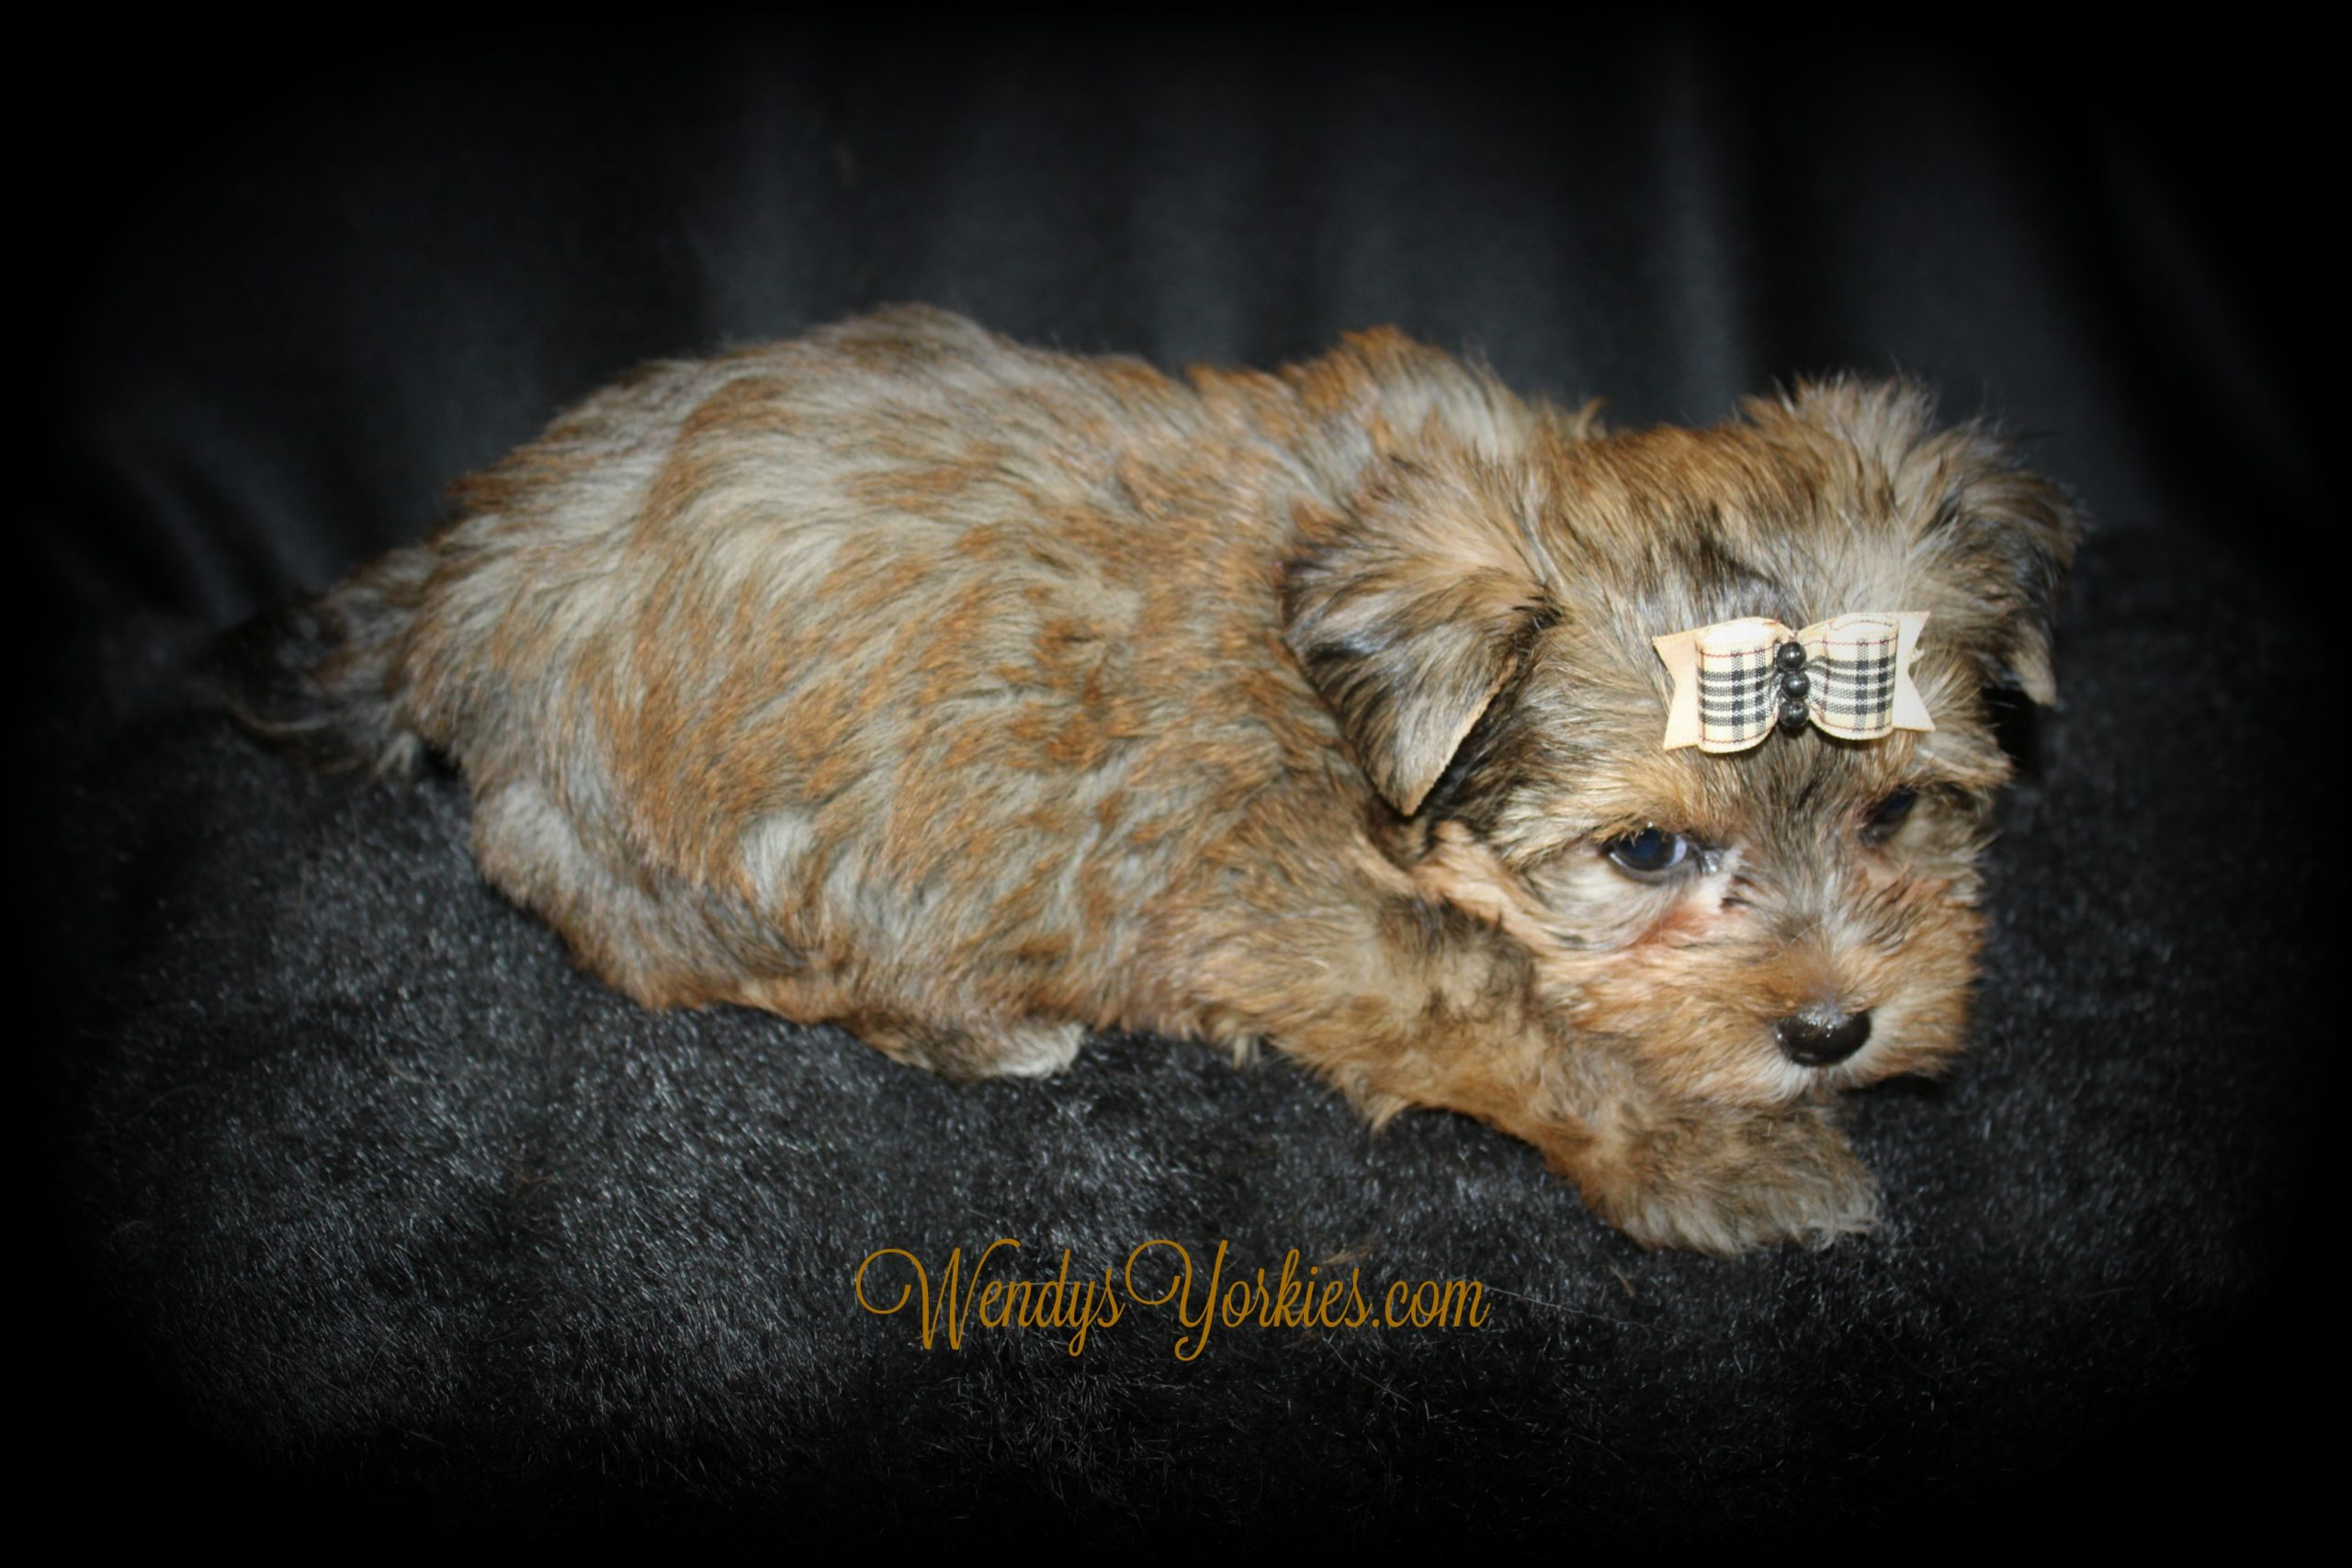 Yorkie puppy, Creed, WendysYorkies.com